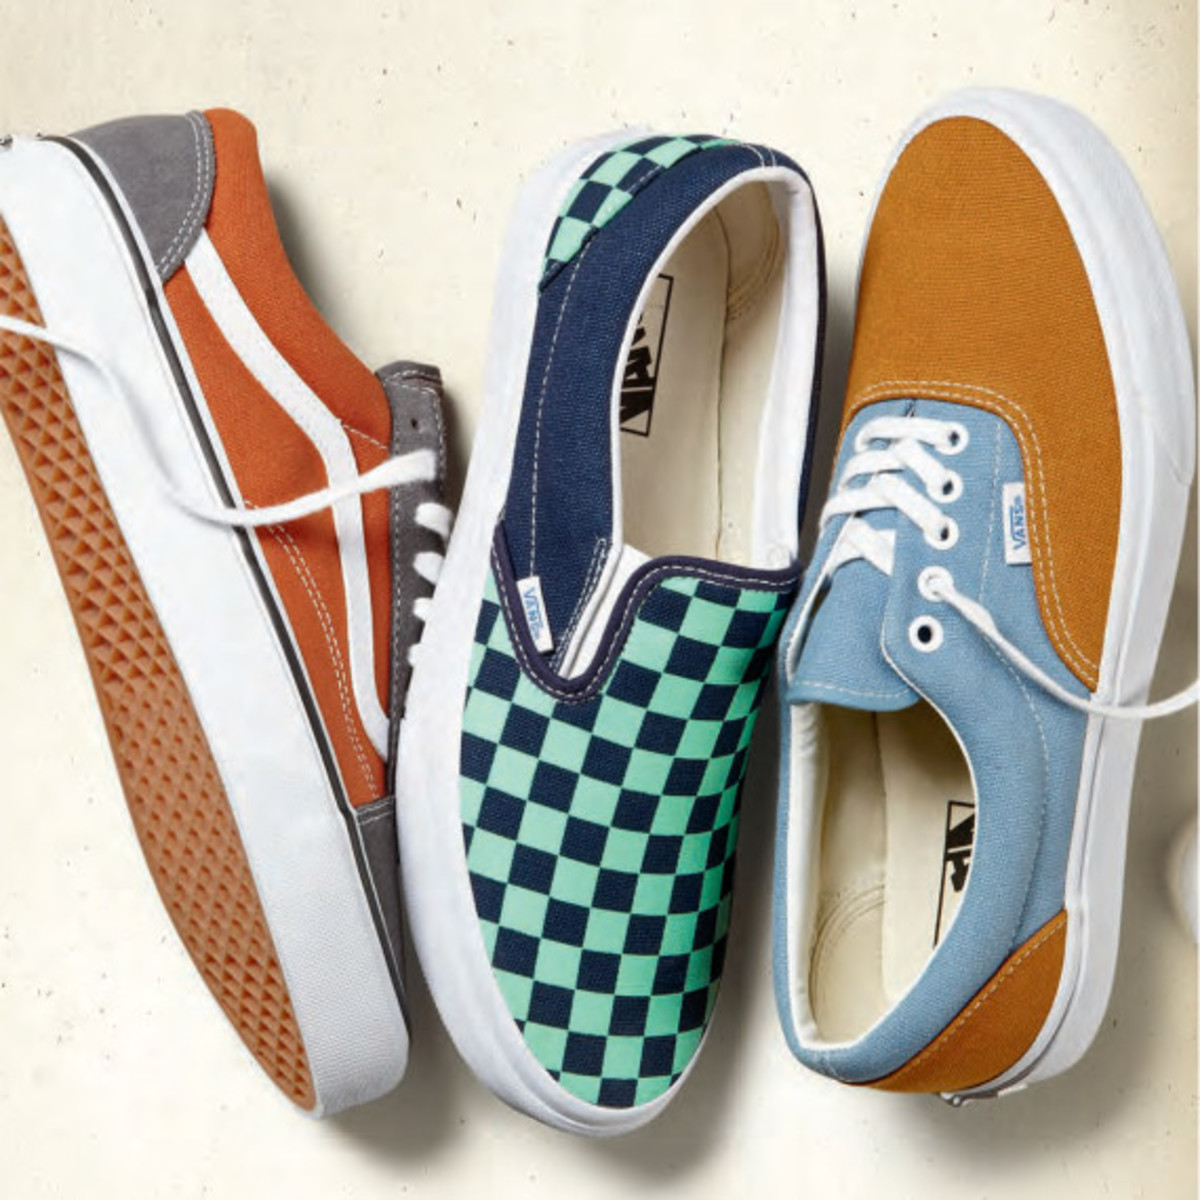 vans-classics-golden-coast-collection-for-spring-2014-09